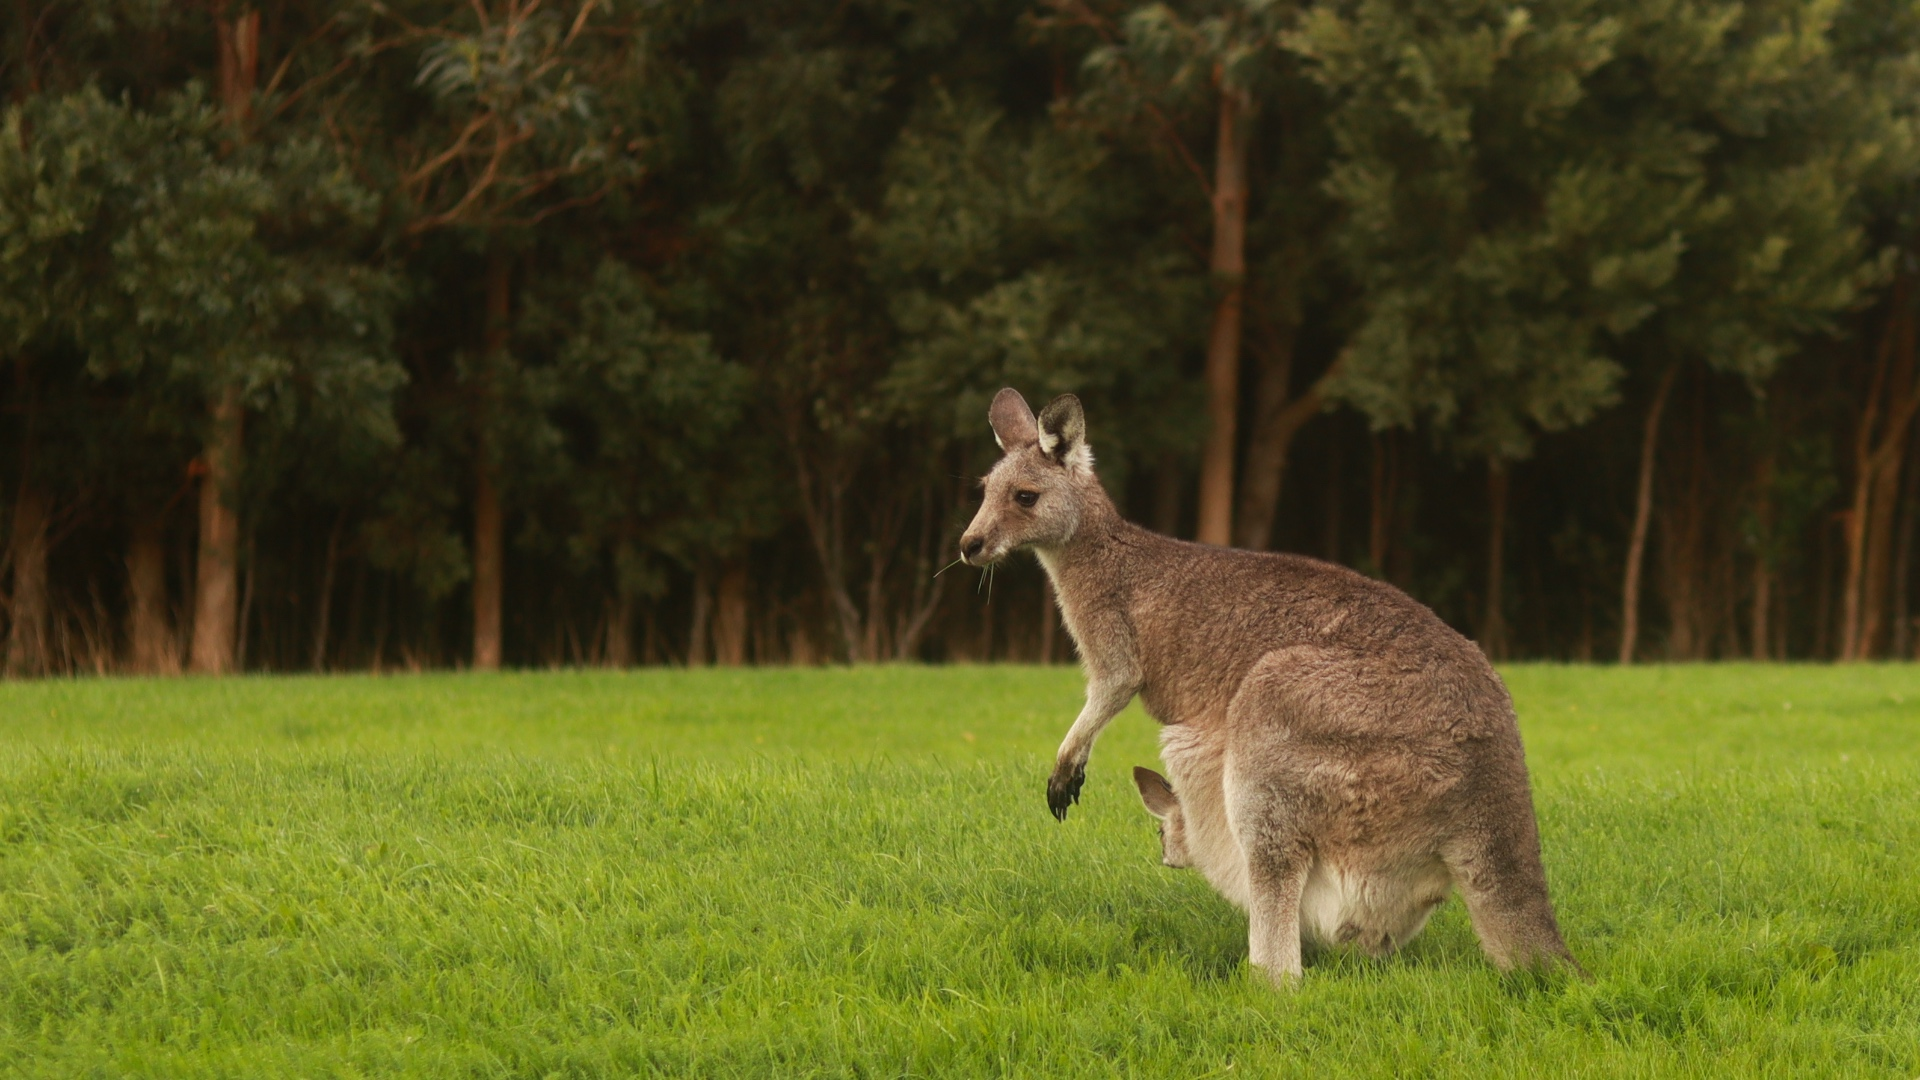 Studio Garden View of Kangaroo